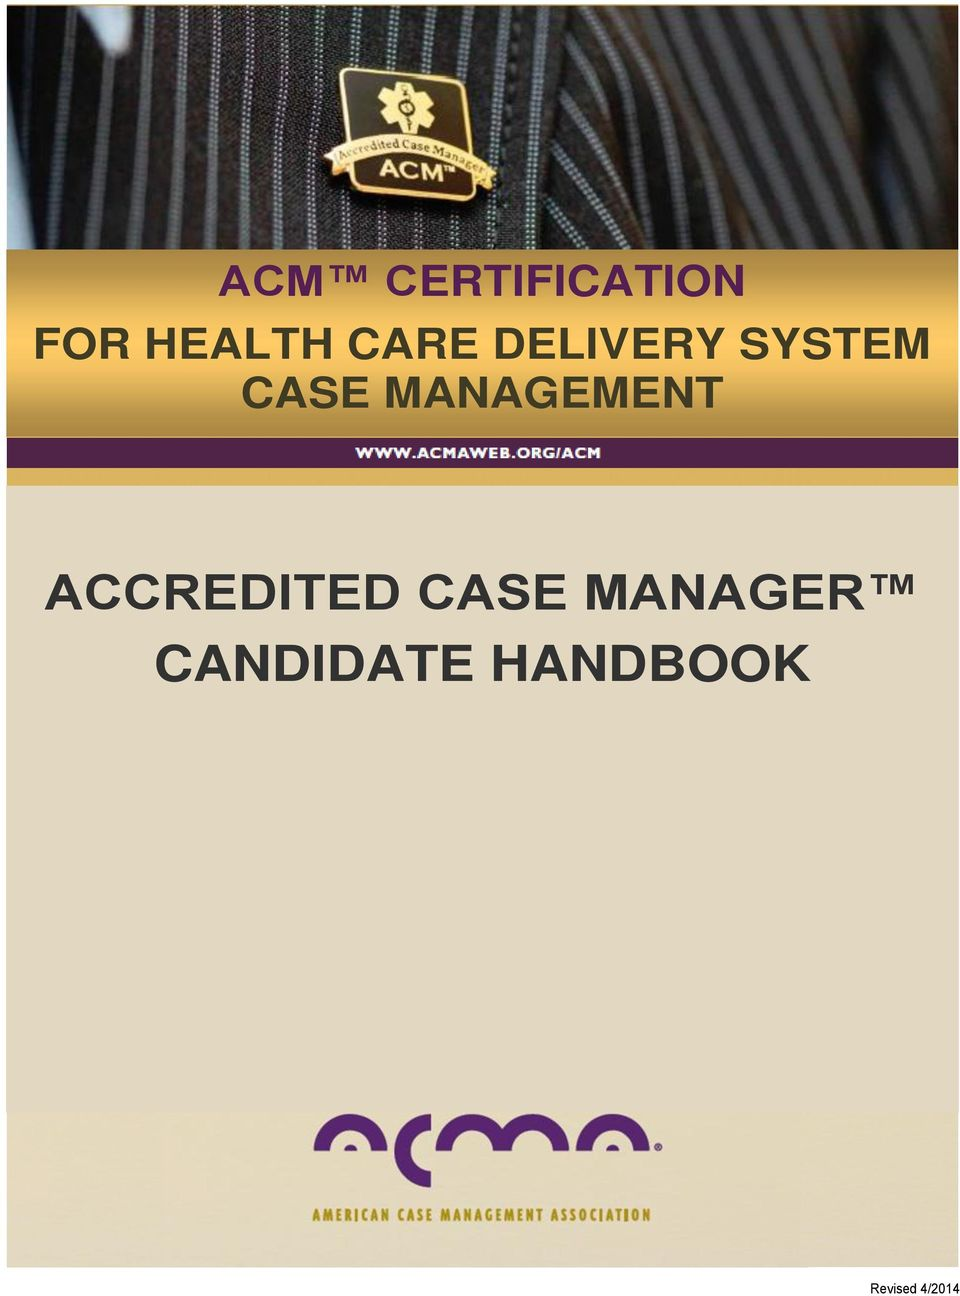 Acm Certification For Health Care Delivery System Case Management